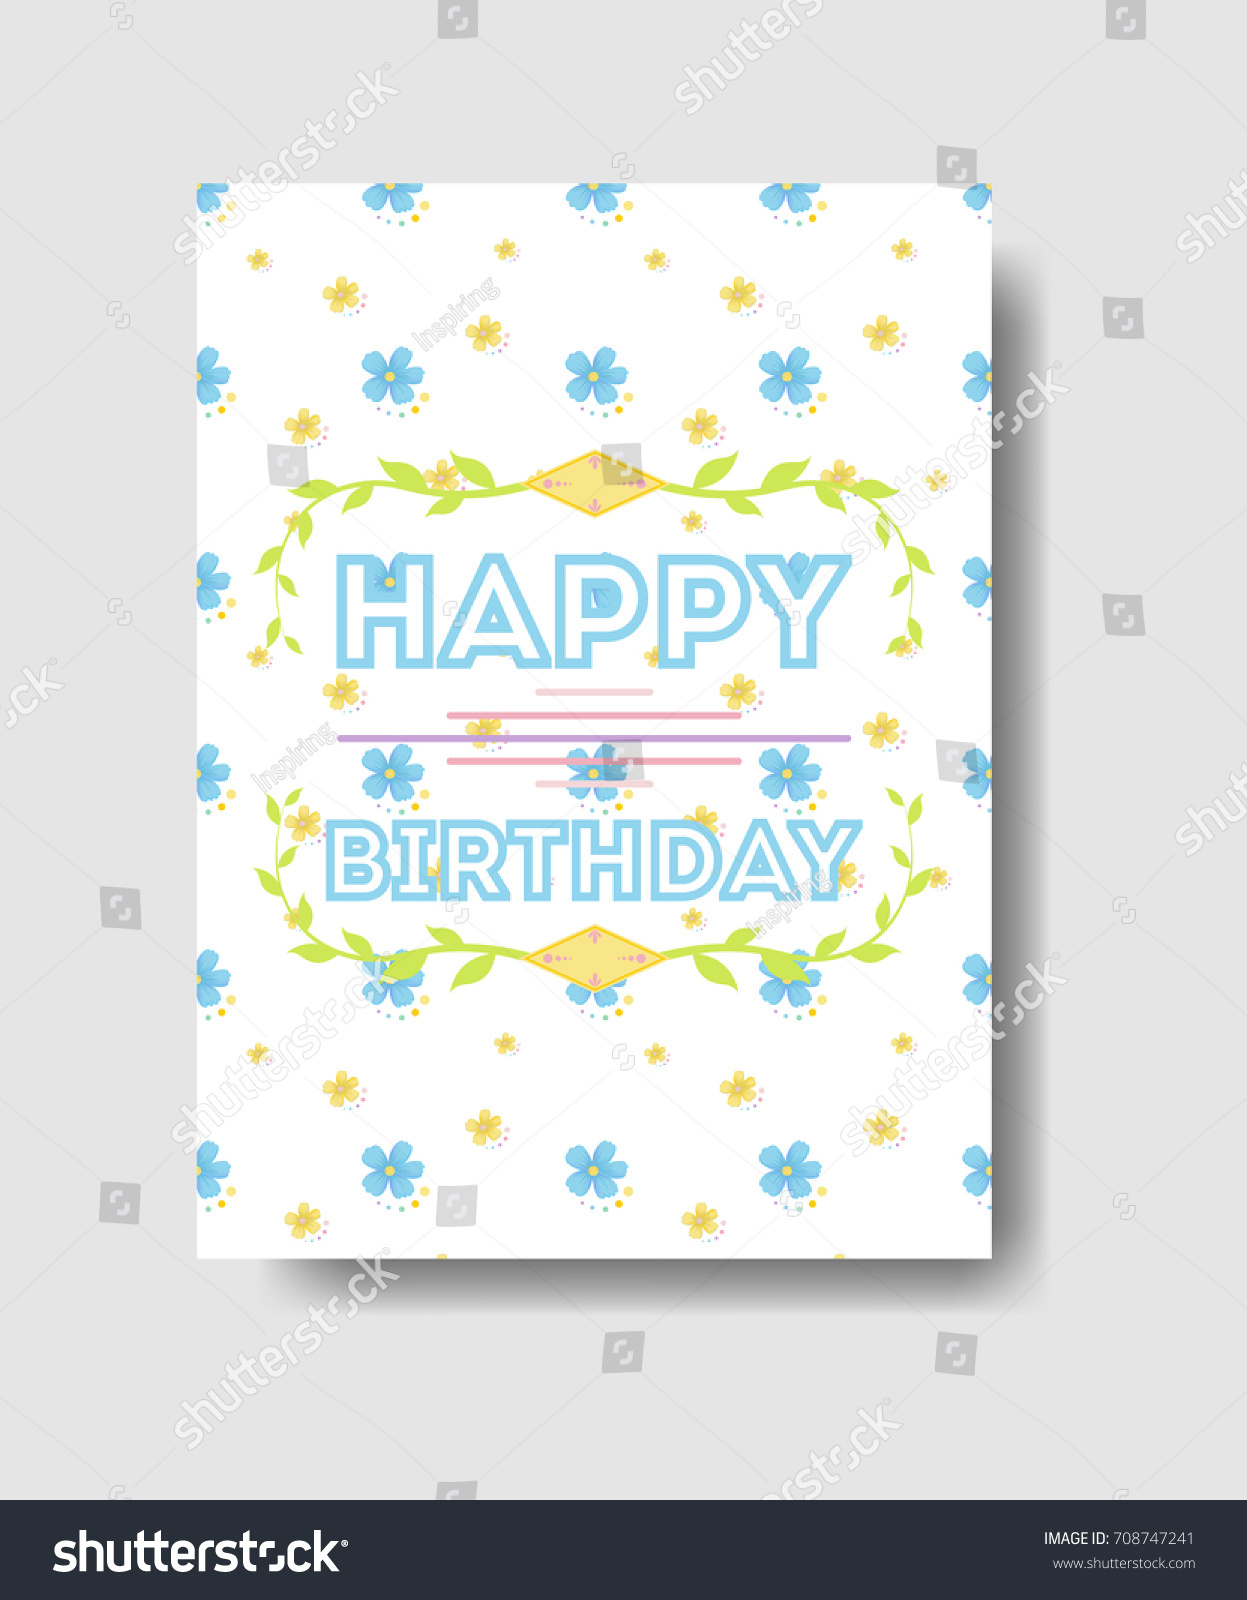 Isolated Birthday Card Greetings Cute Decorations Vector – Birthday Card Greetings